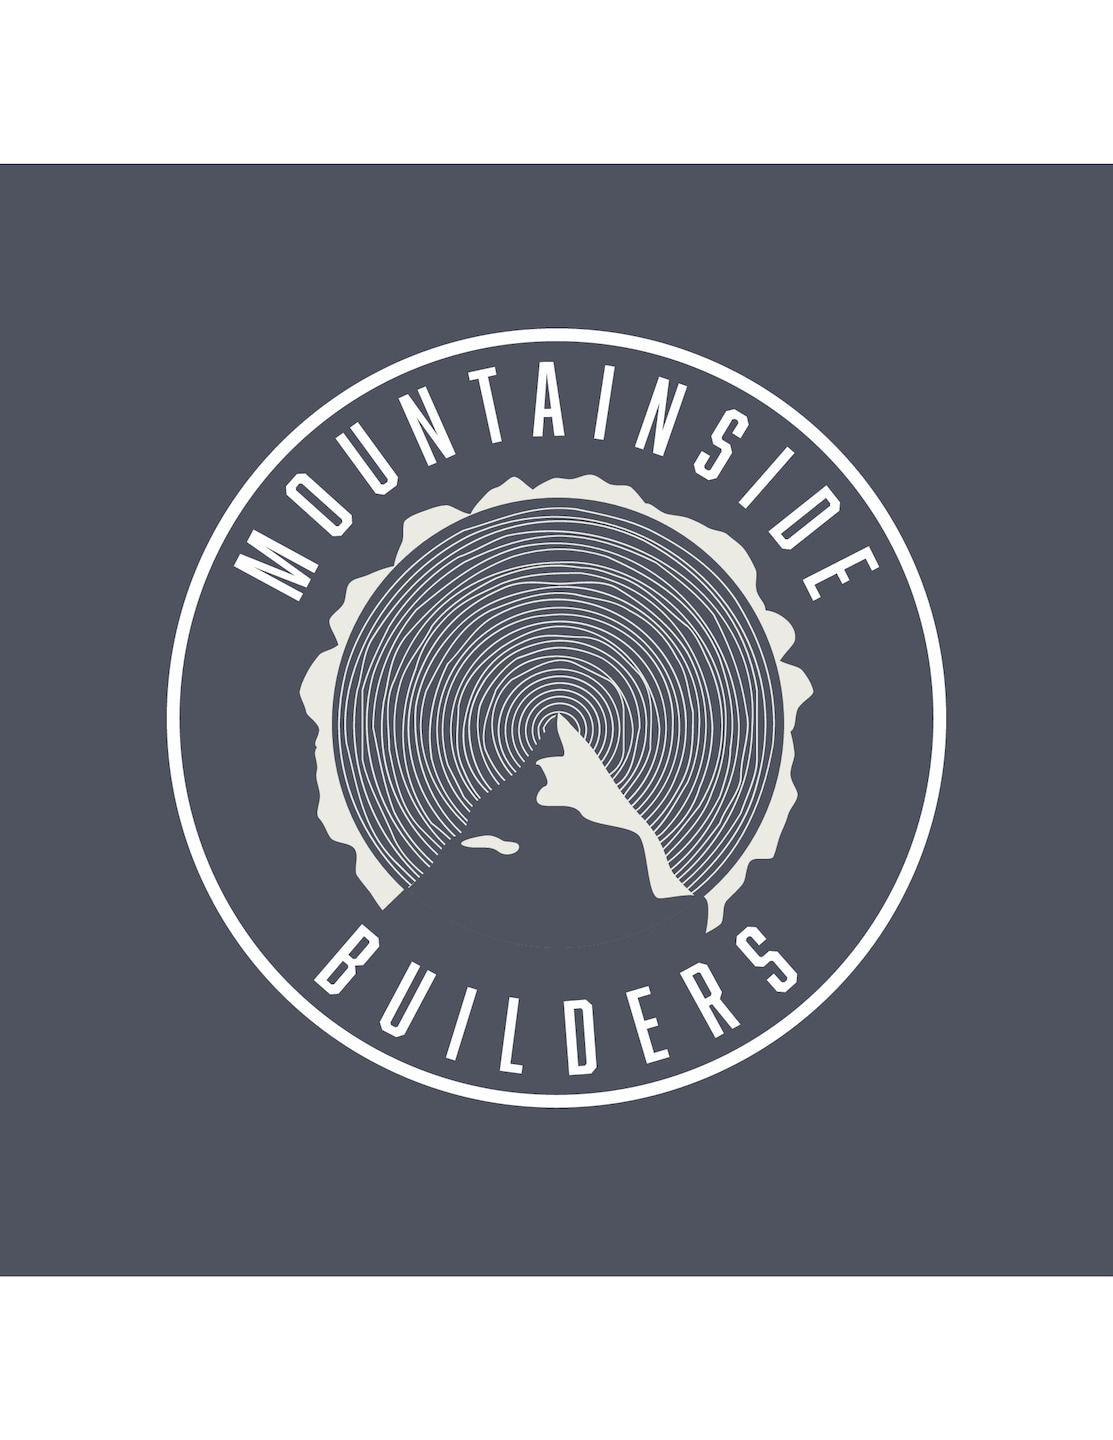 Mountainside Builders